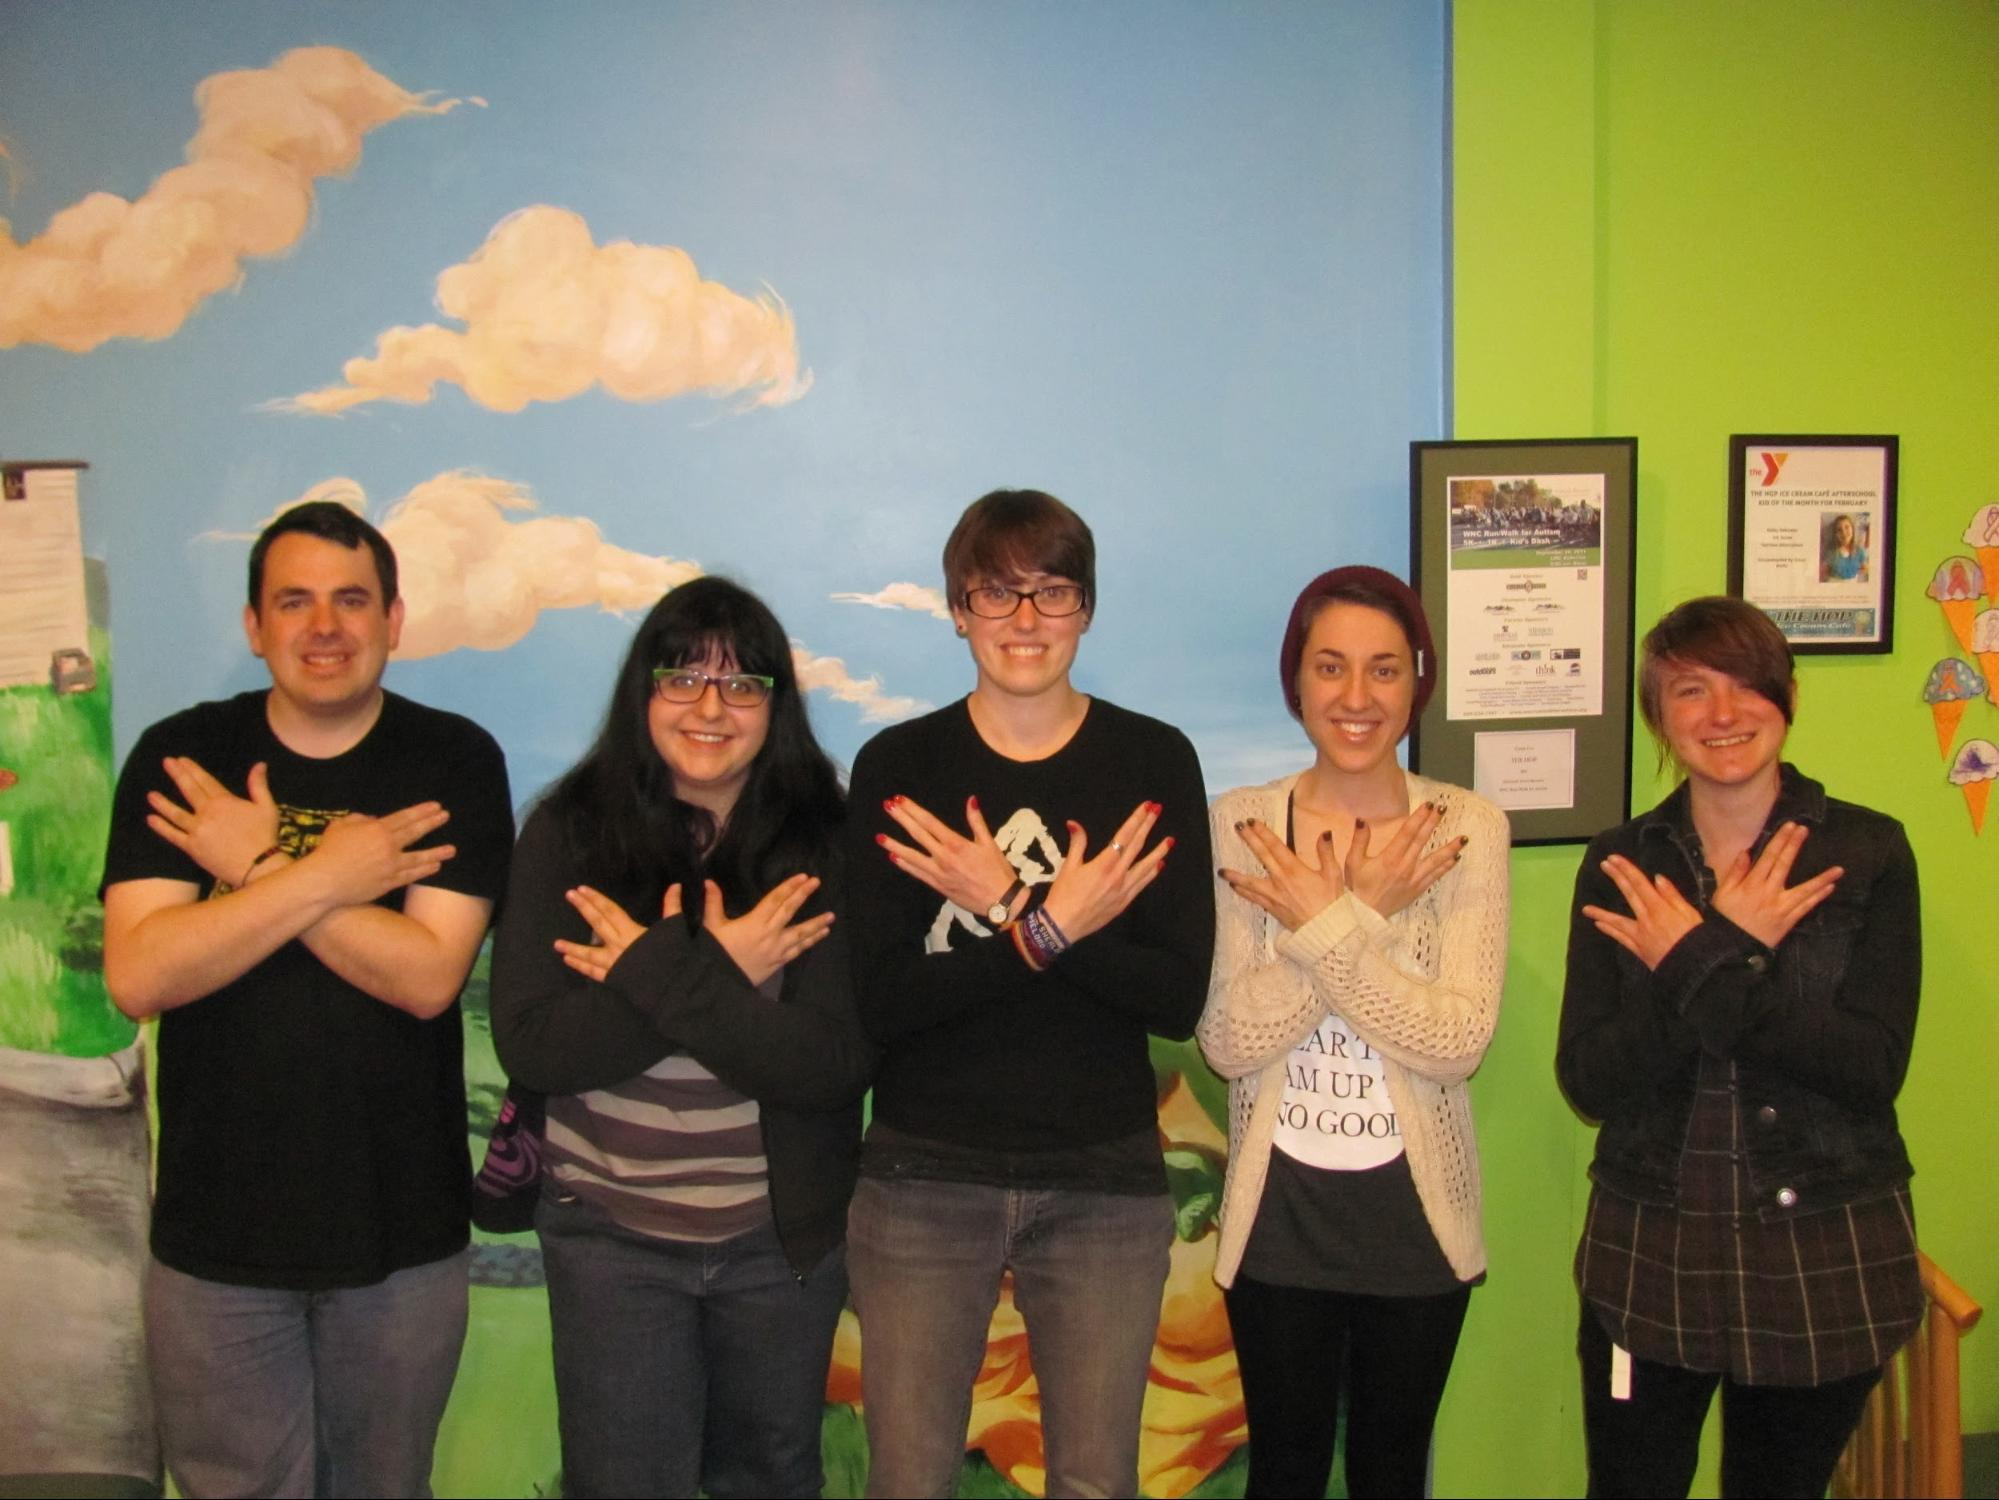 AHPA members doing Nerdfighter Sign